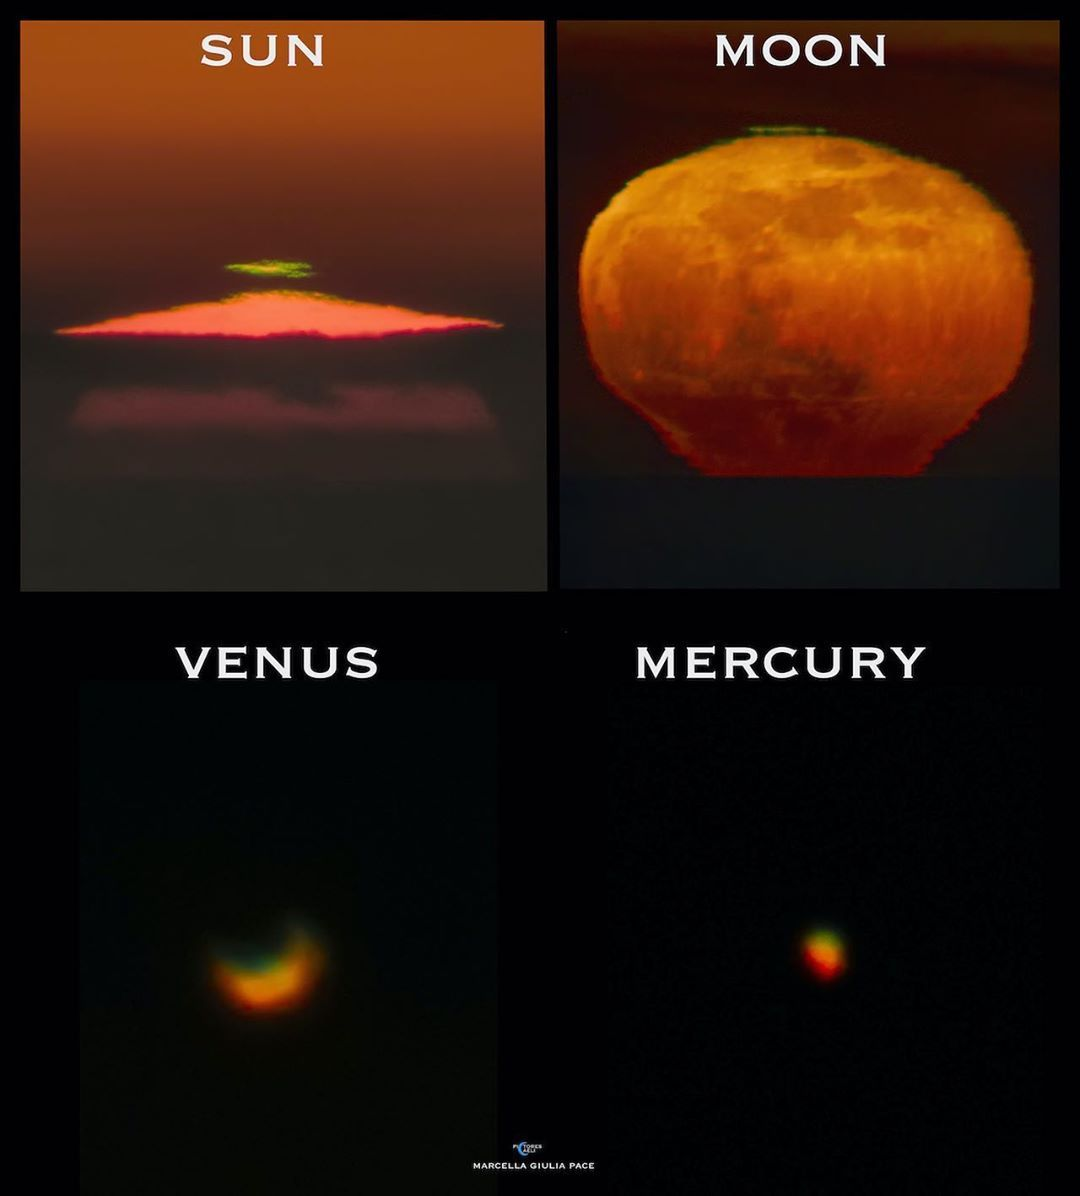 Pin By Kezia Sherlyta On Cosmic Thangs Astronomy Pictures Astronomy Space Pictures